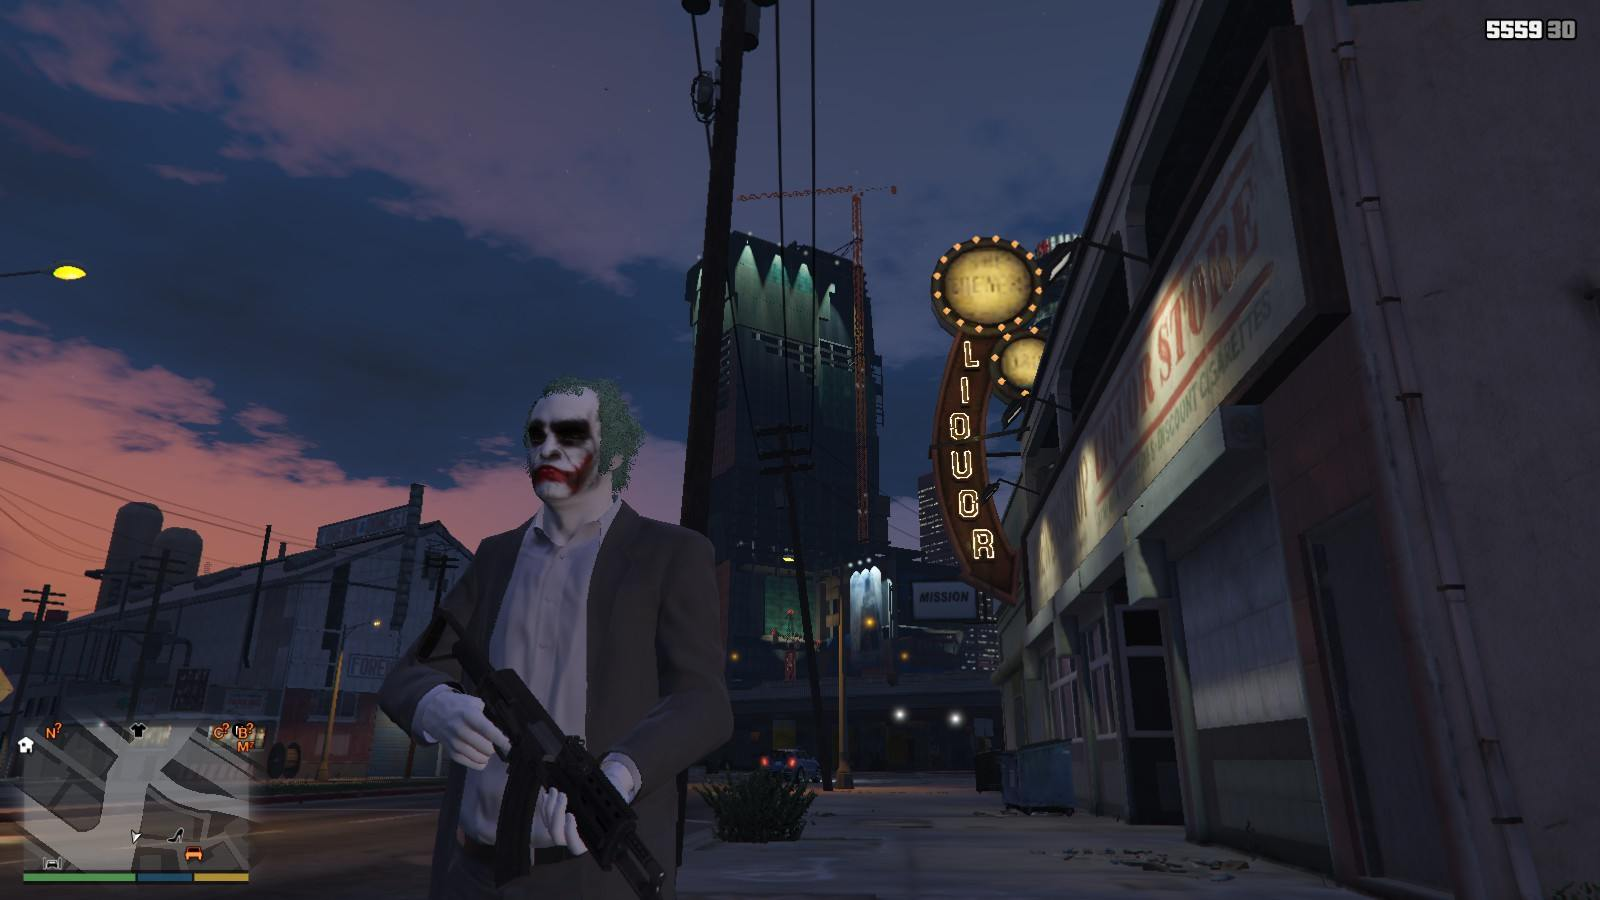 Joker Trevor Mod For GTA5 - 9Gta | GTA Mods